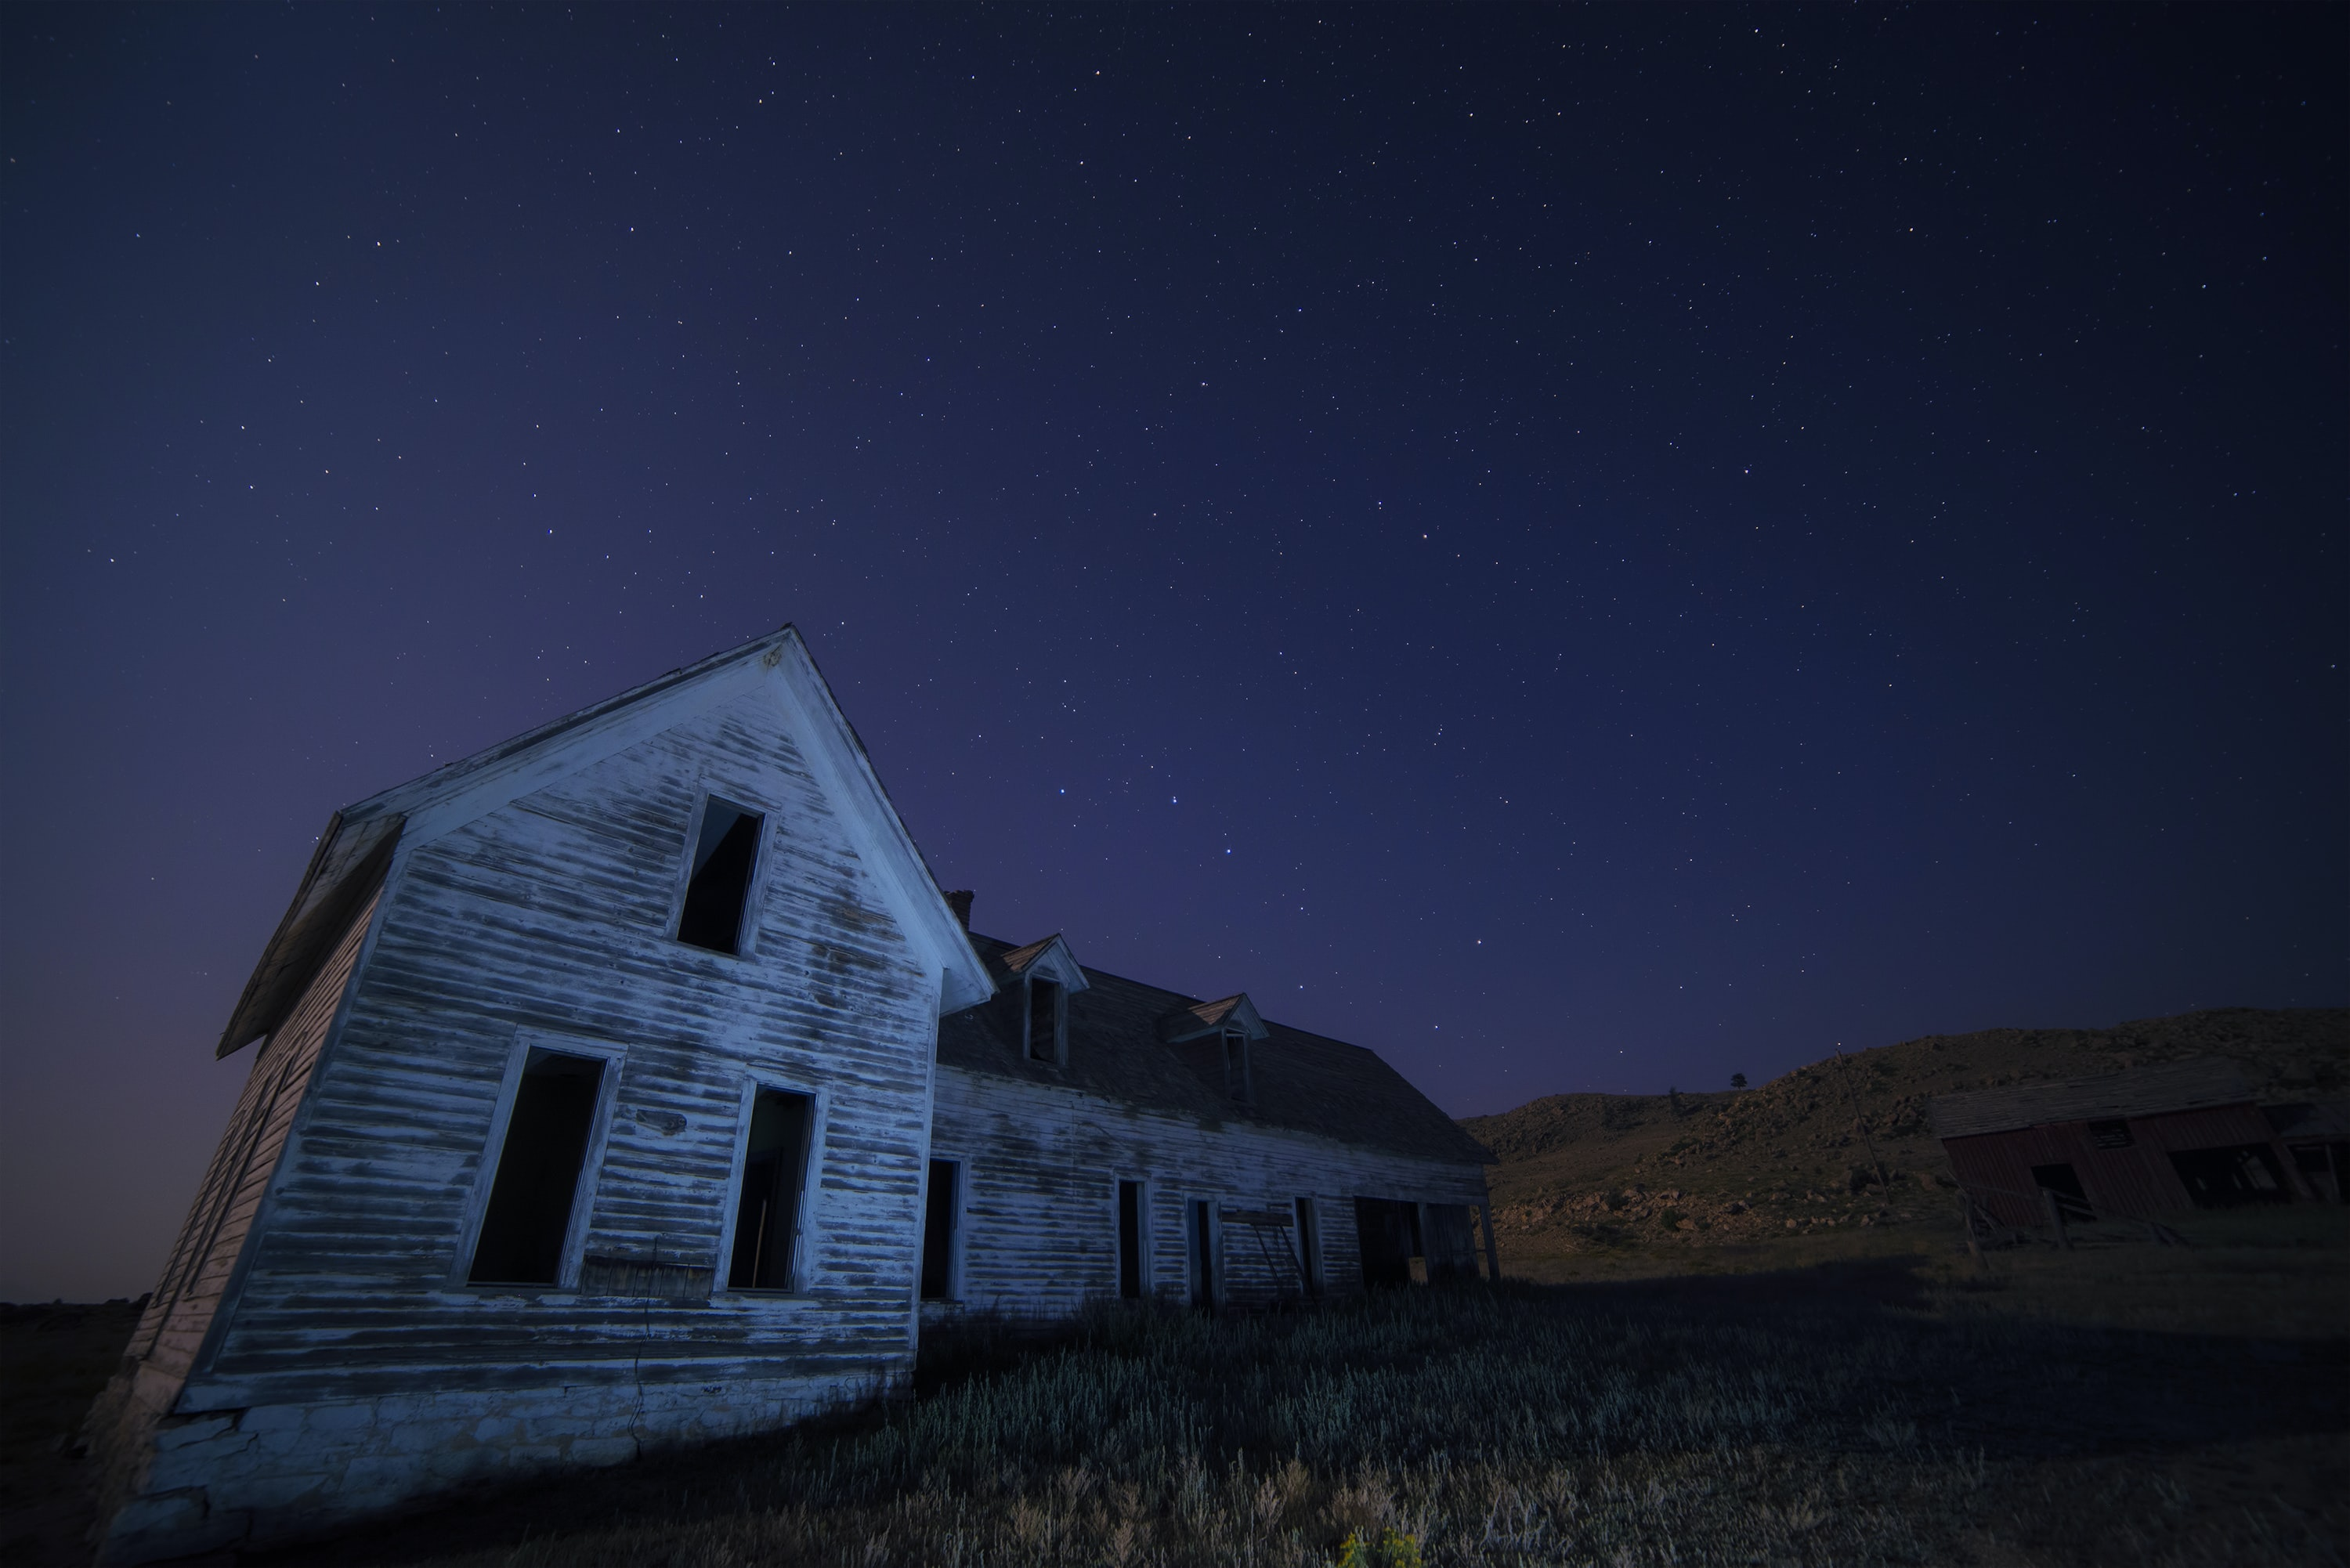 house on field under sky with stars